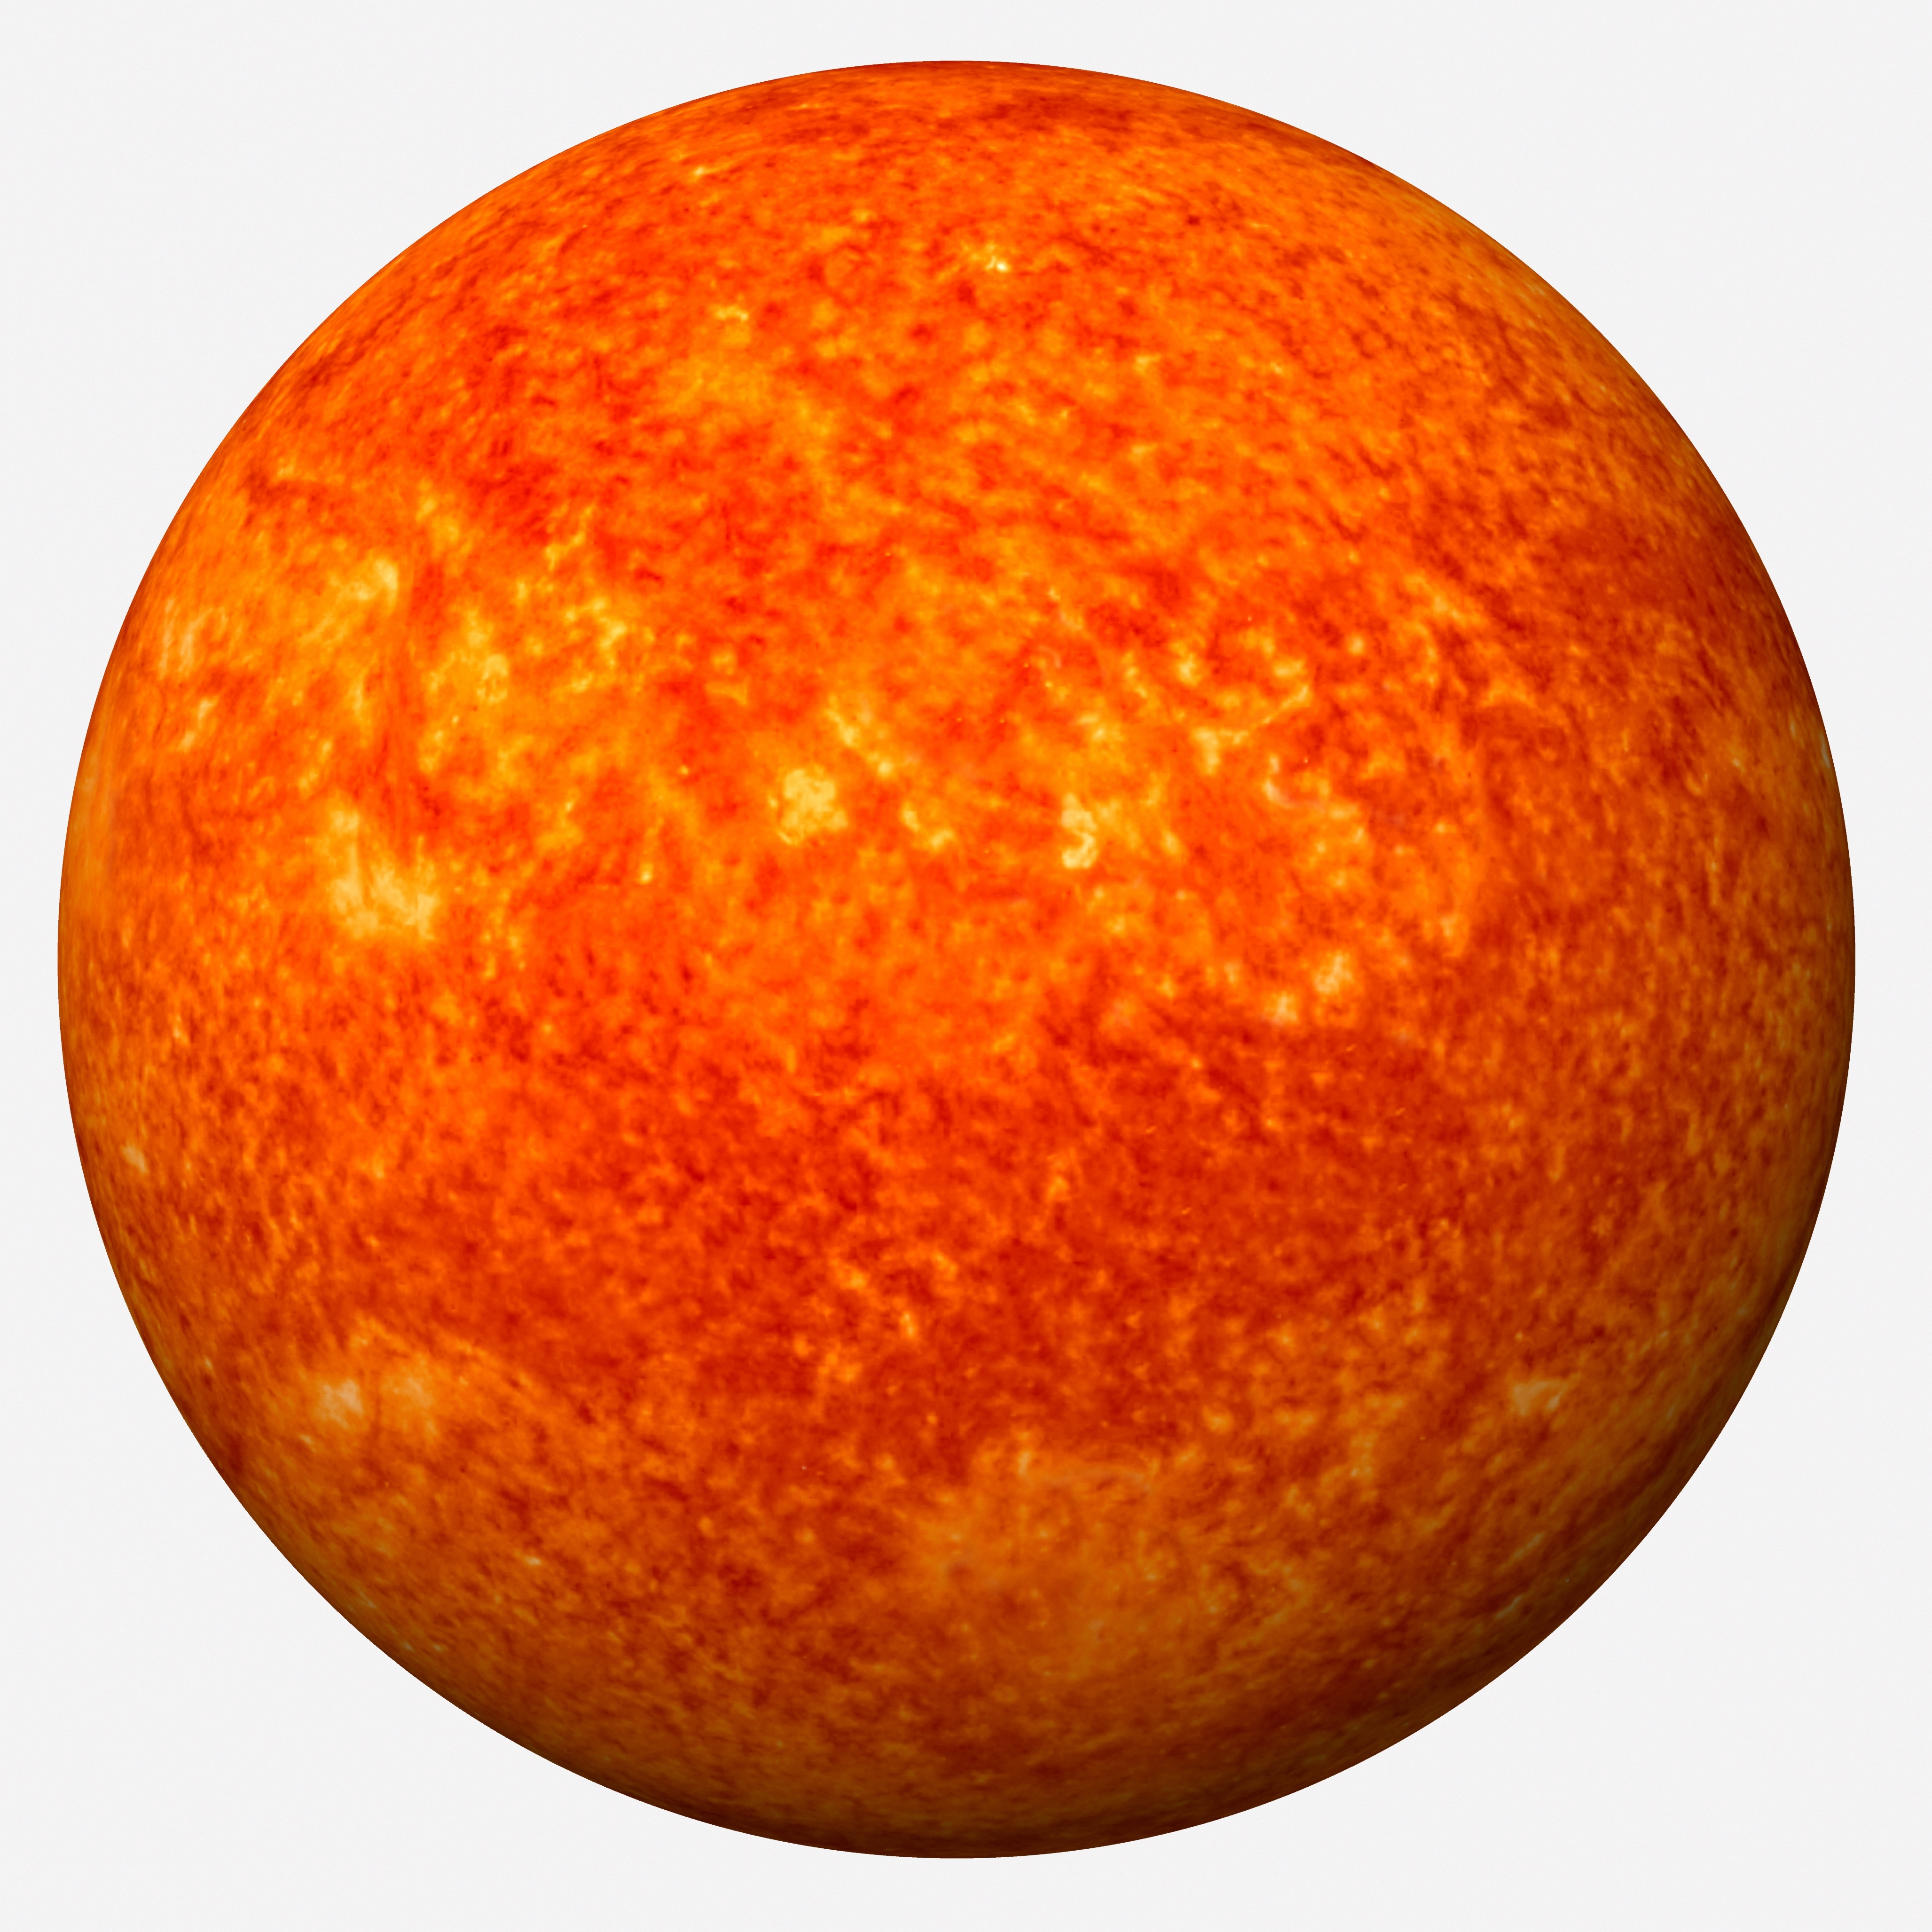 There's a prize hidden inside this red giant